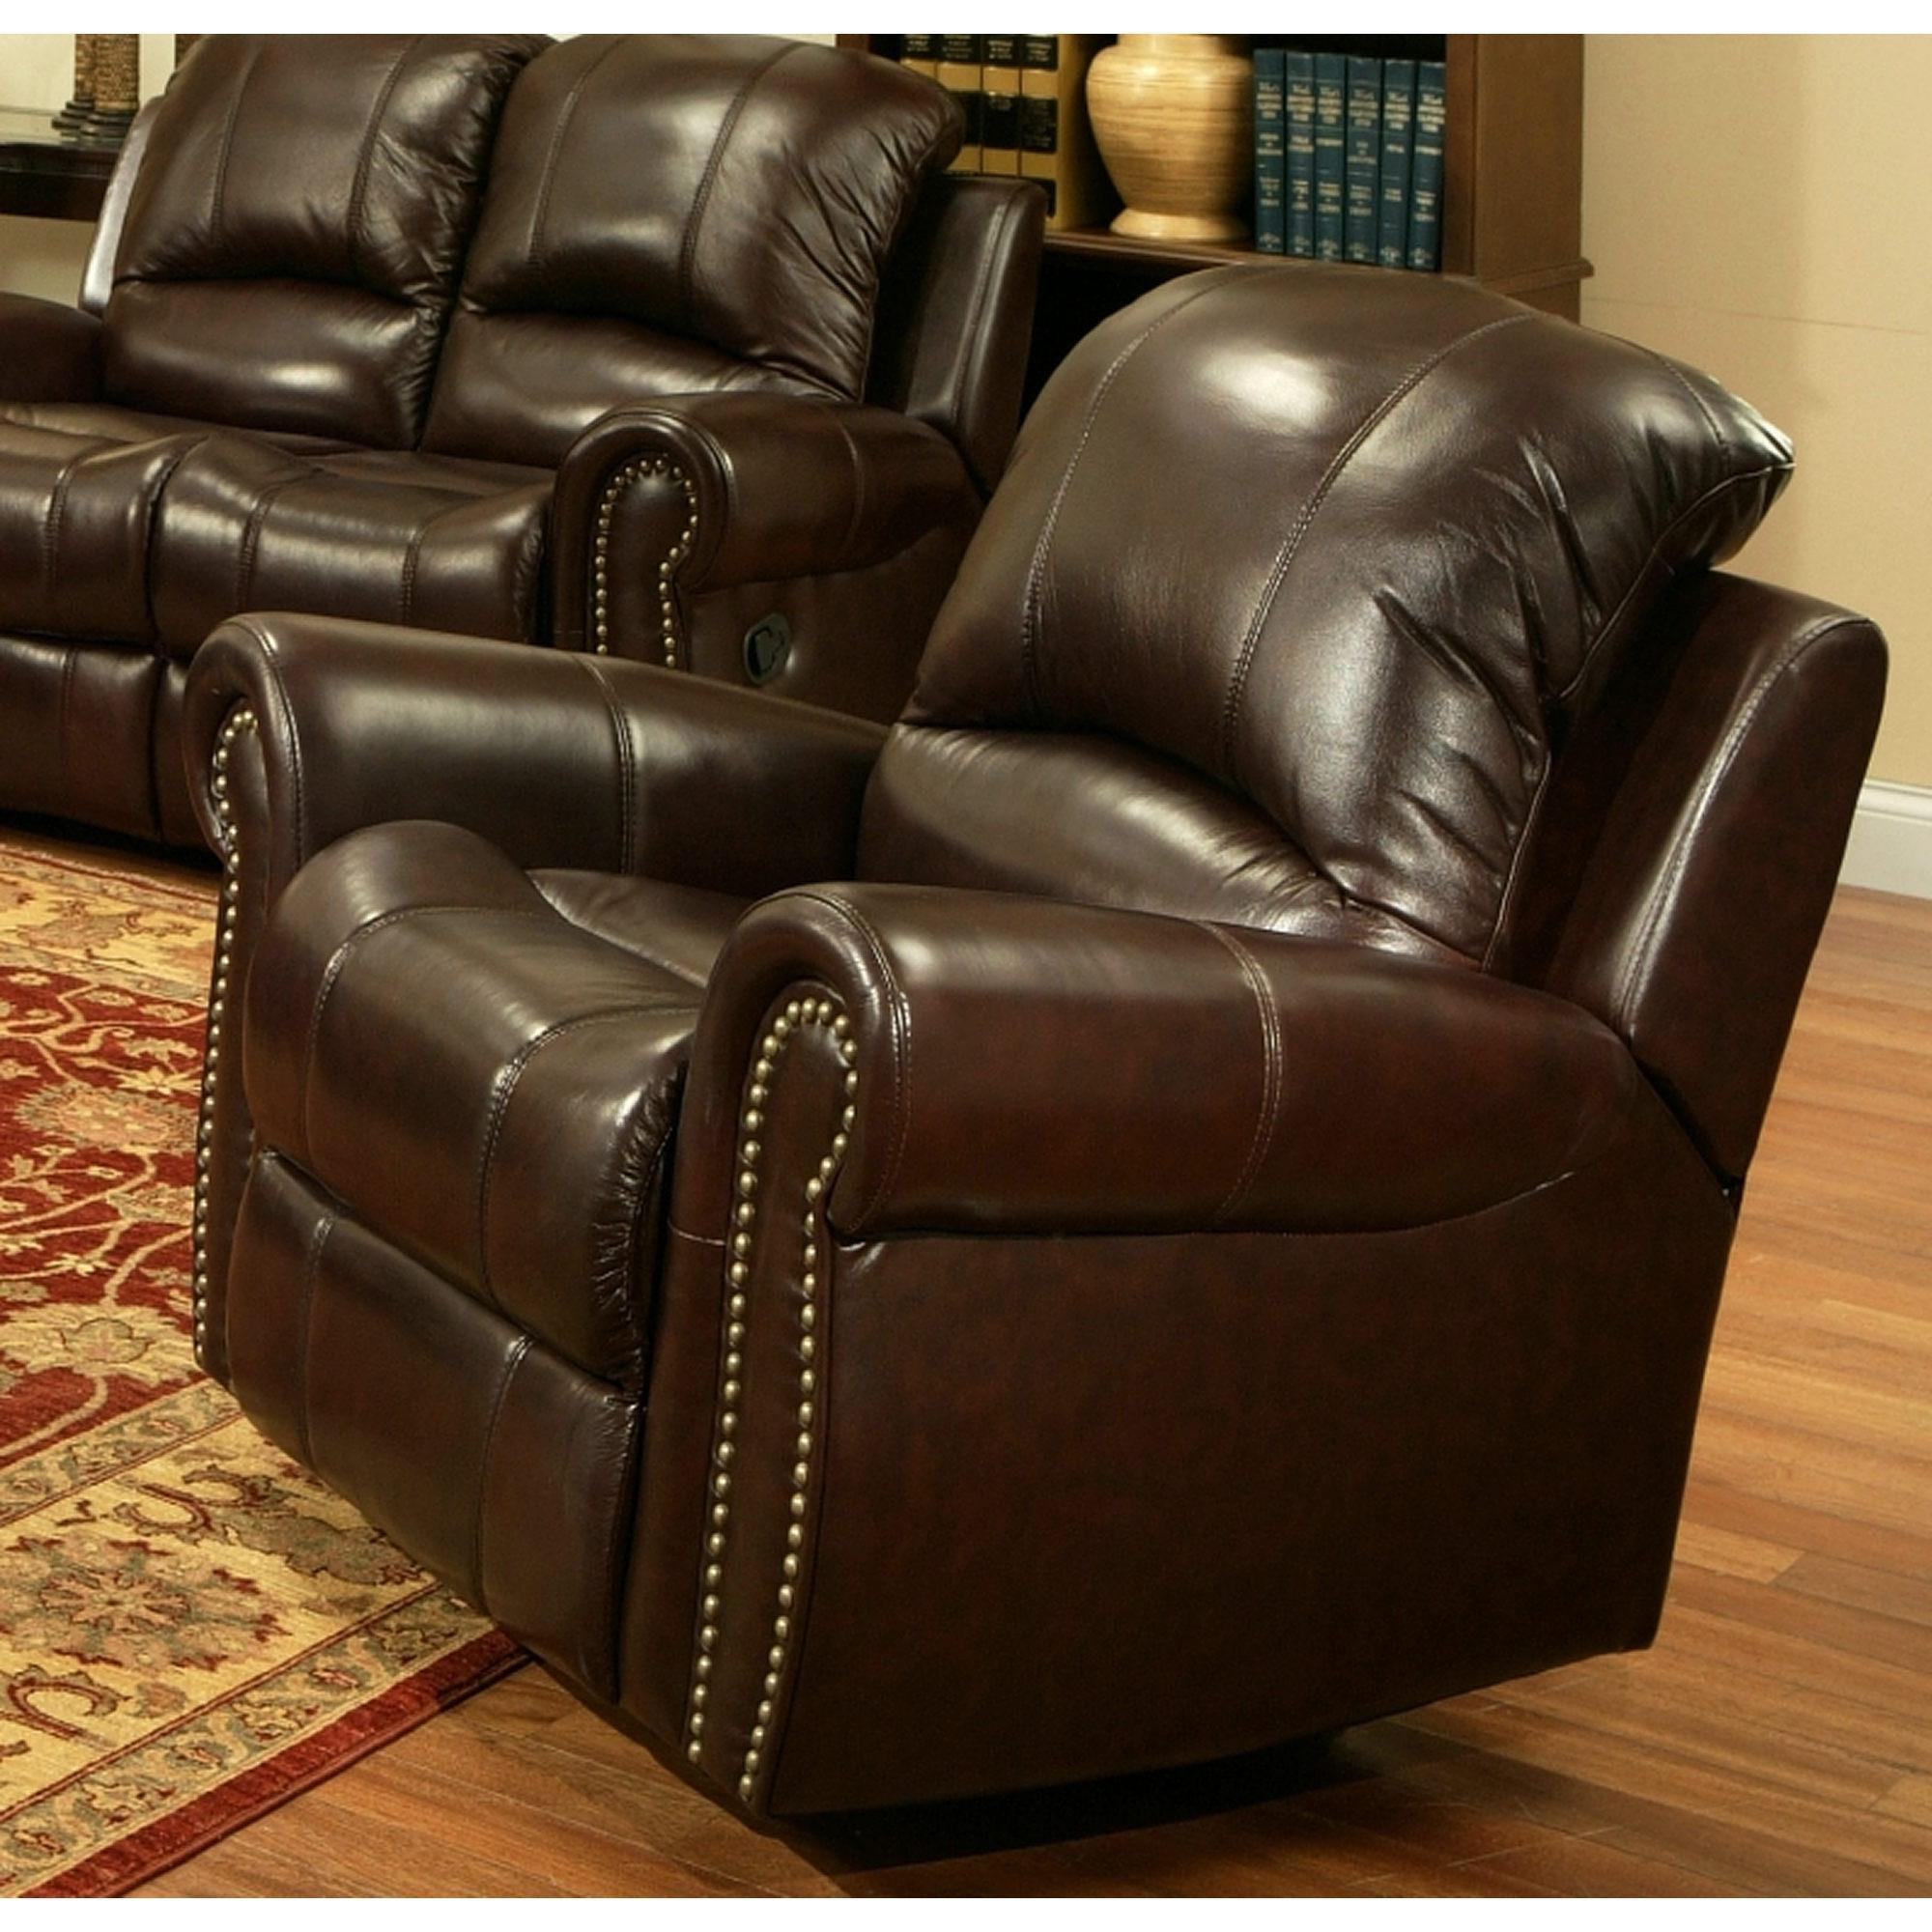 Top Rated Recliners | Homesfeed Within Abbyson Recliners (Image 20 of 20)